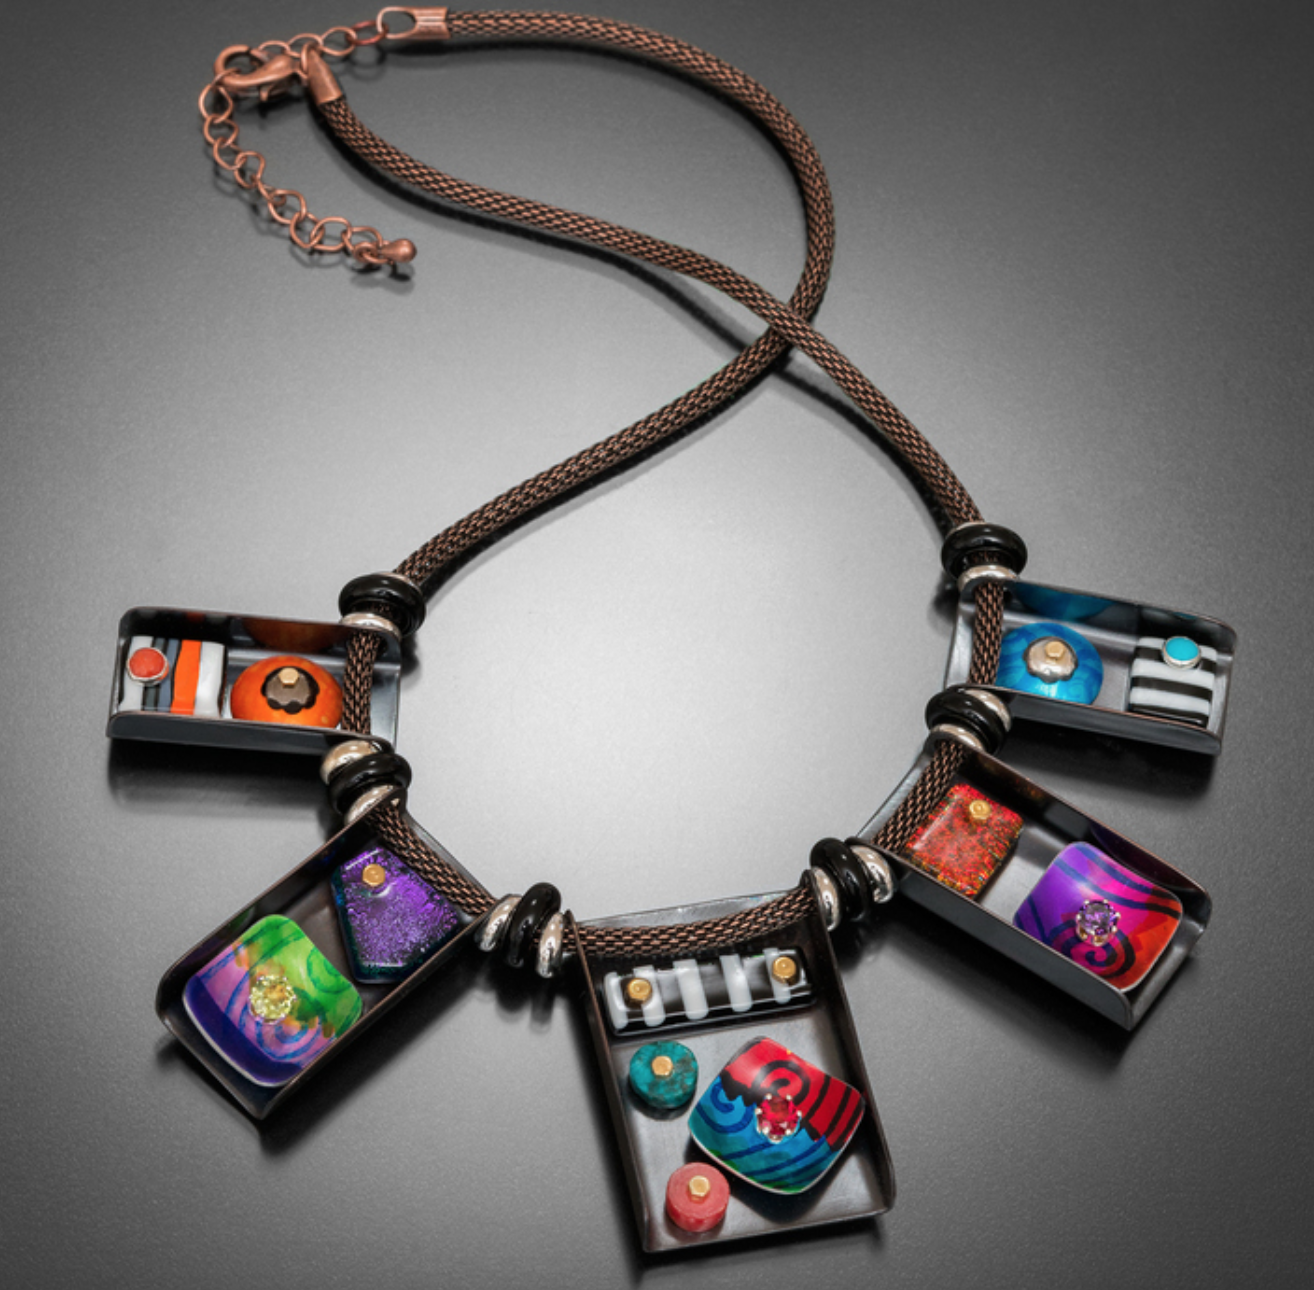 Dana McDaniel - http://danadesignstudio.comJewelry of mixed metals including copper, pewter, silver and hand-painted and heat-treated aluminum. Some with kiln-fired glass, set gemstones, river stones or vitreous enamels